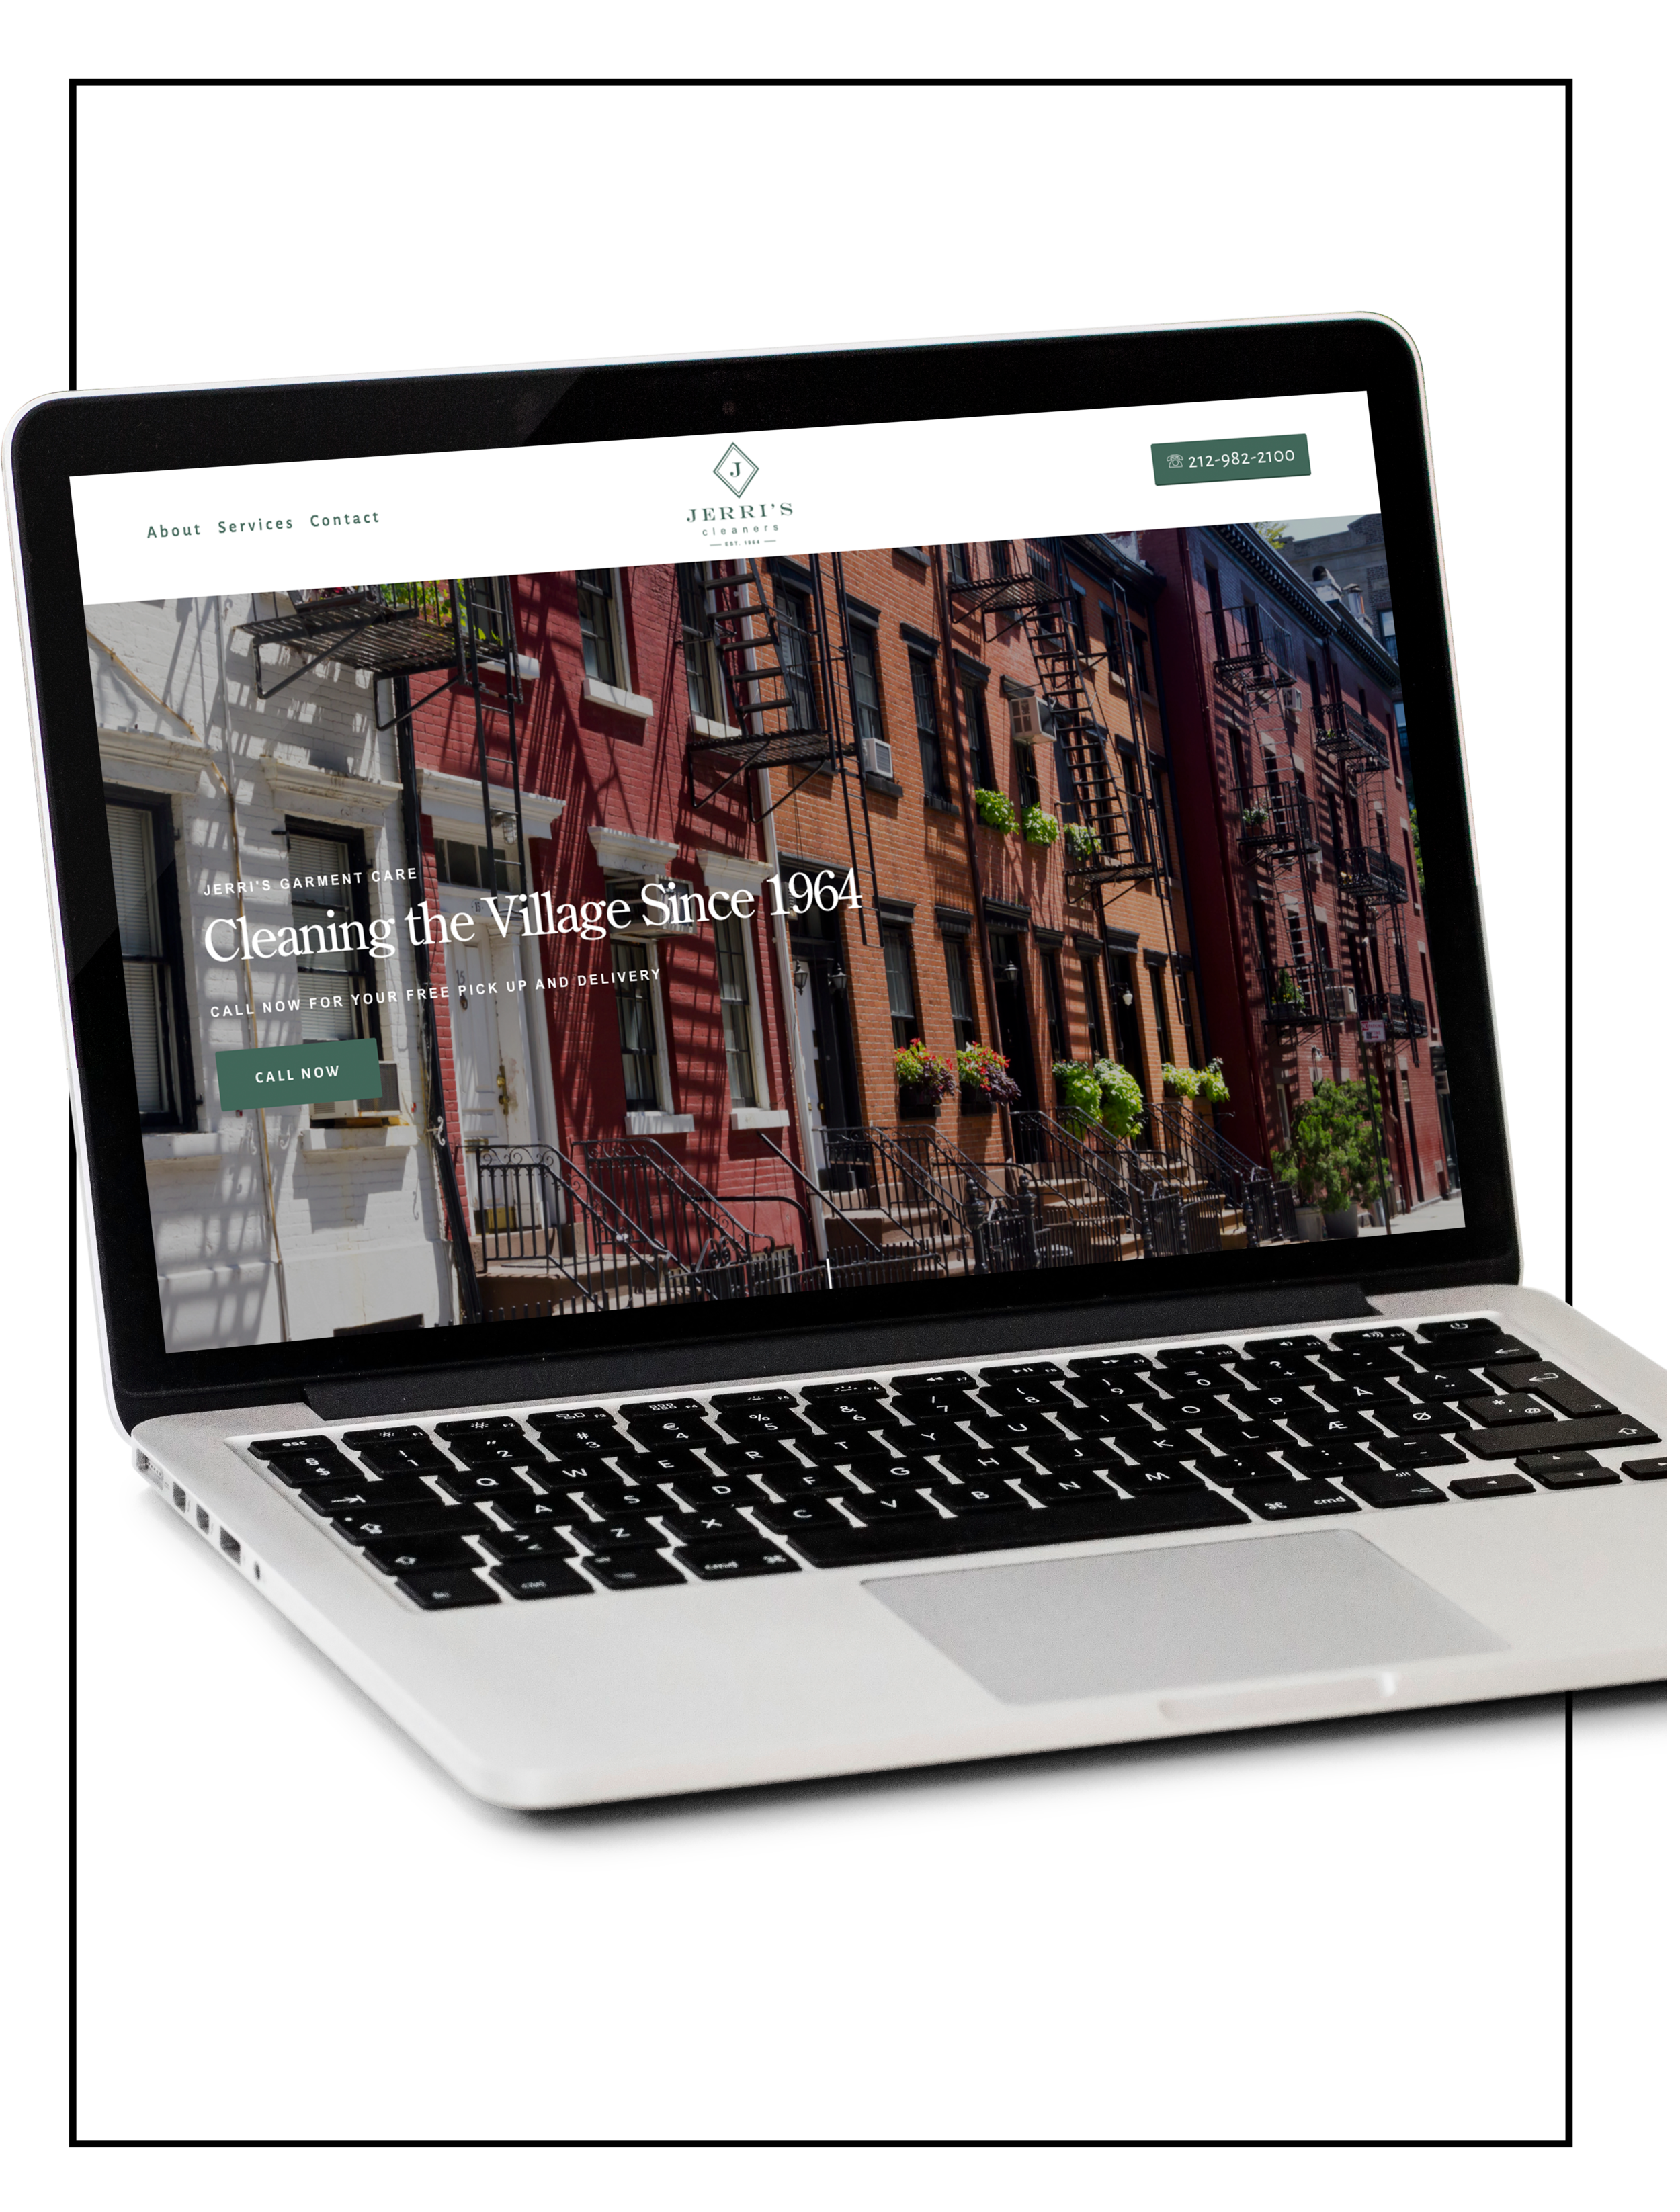 Showcasing an image of a laptop with a website build of Spacebar Agency -  Jerri's Cleaners